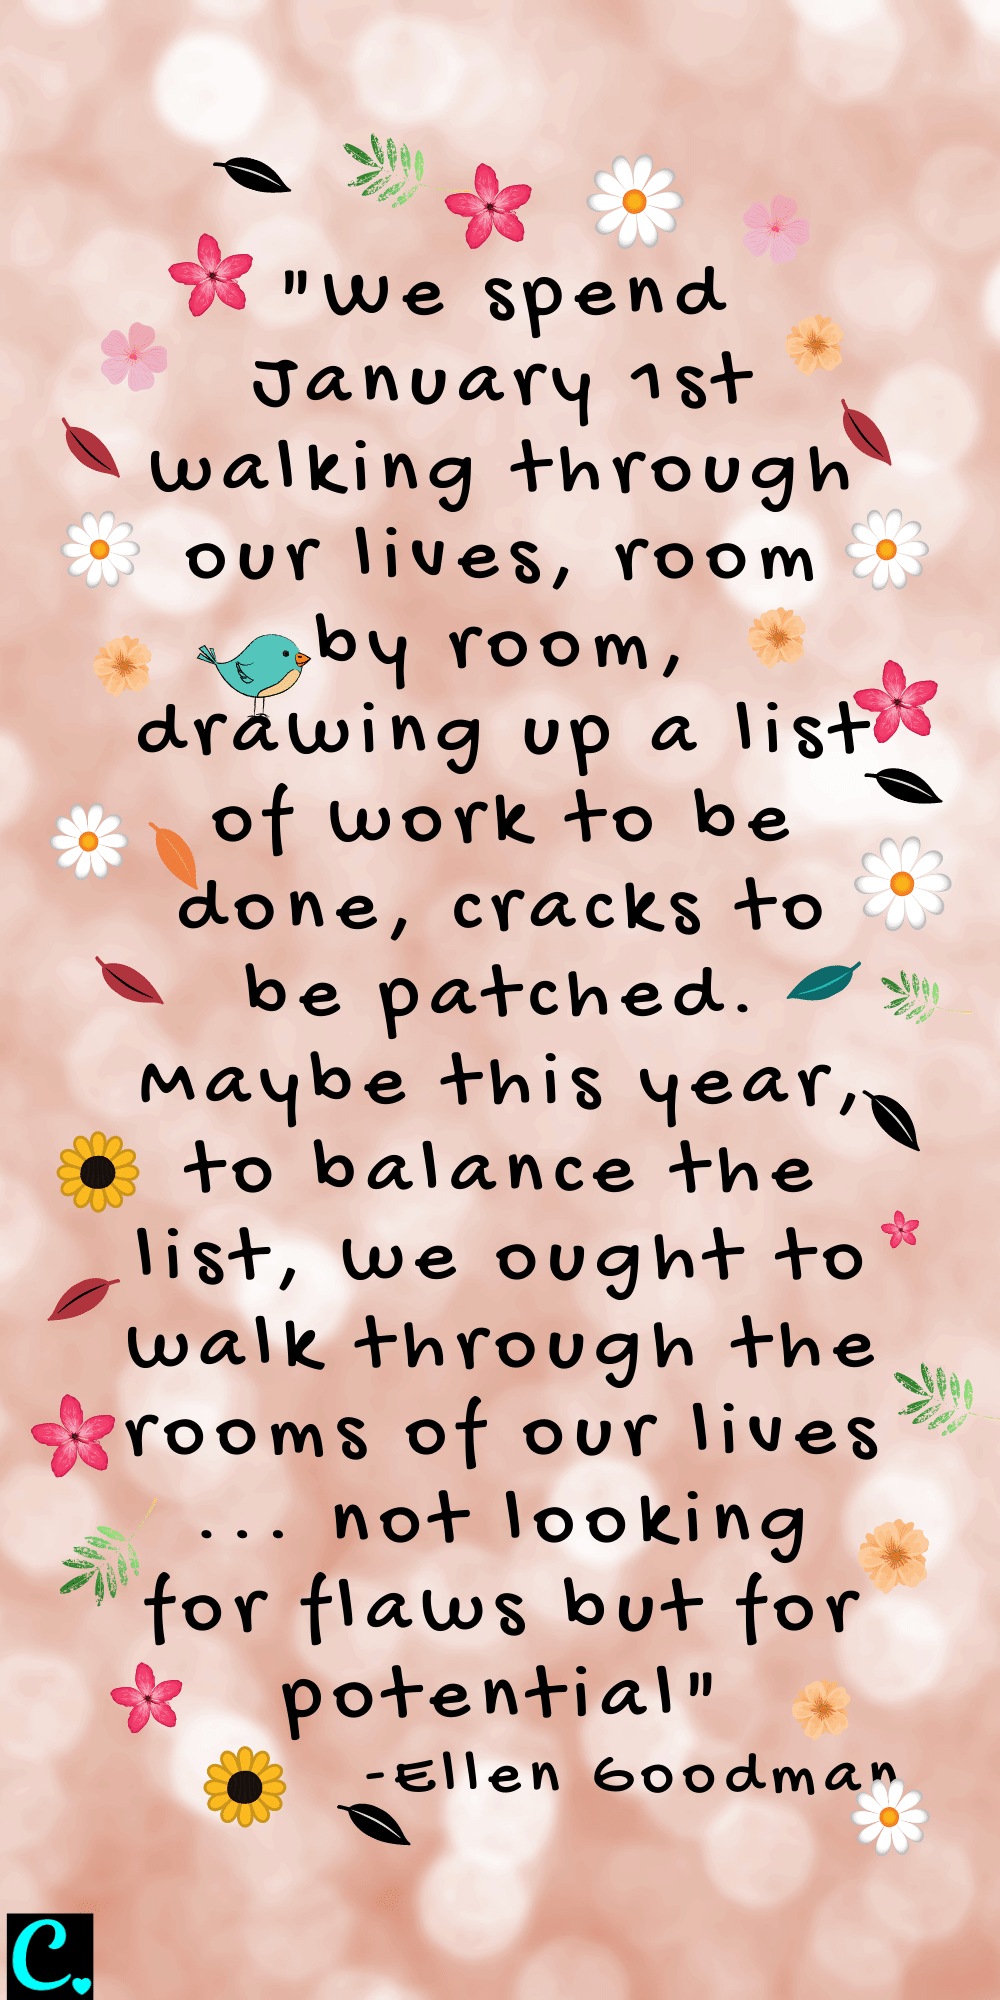 """""""We spend January 1st walking through our lives, room by room, drawing up a list of work to be done, cracks to be patched. Maybe this year, to balance the list, we ought to walk through the rooms of our lives ... not looking for flaws but for potential"""" - Ellen Goodman"""